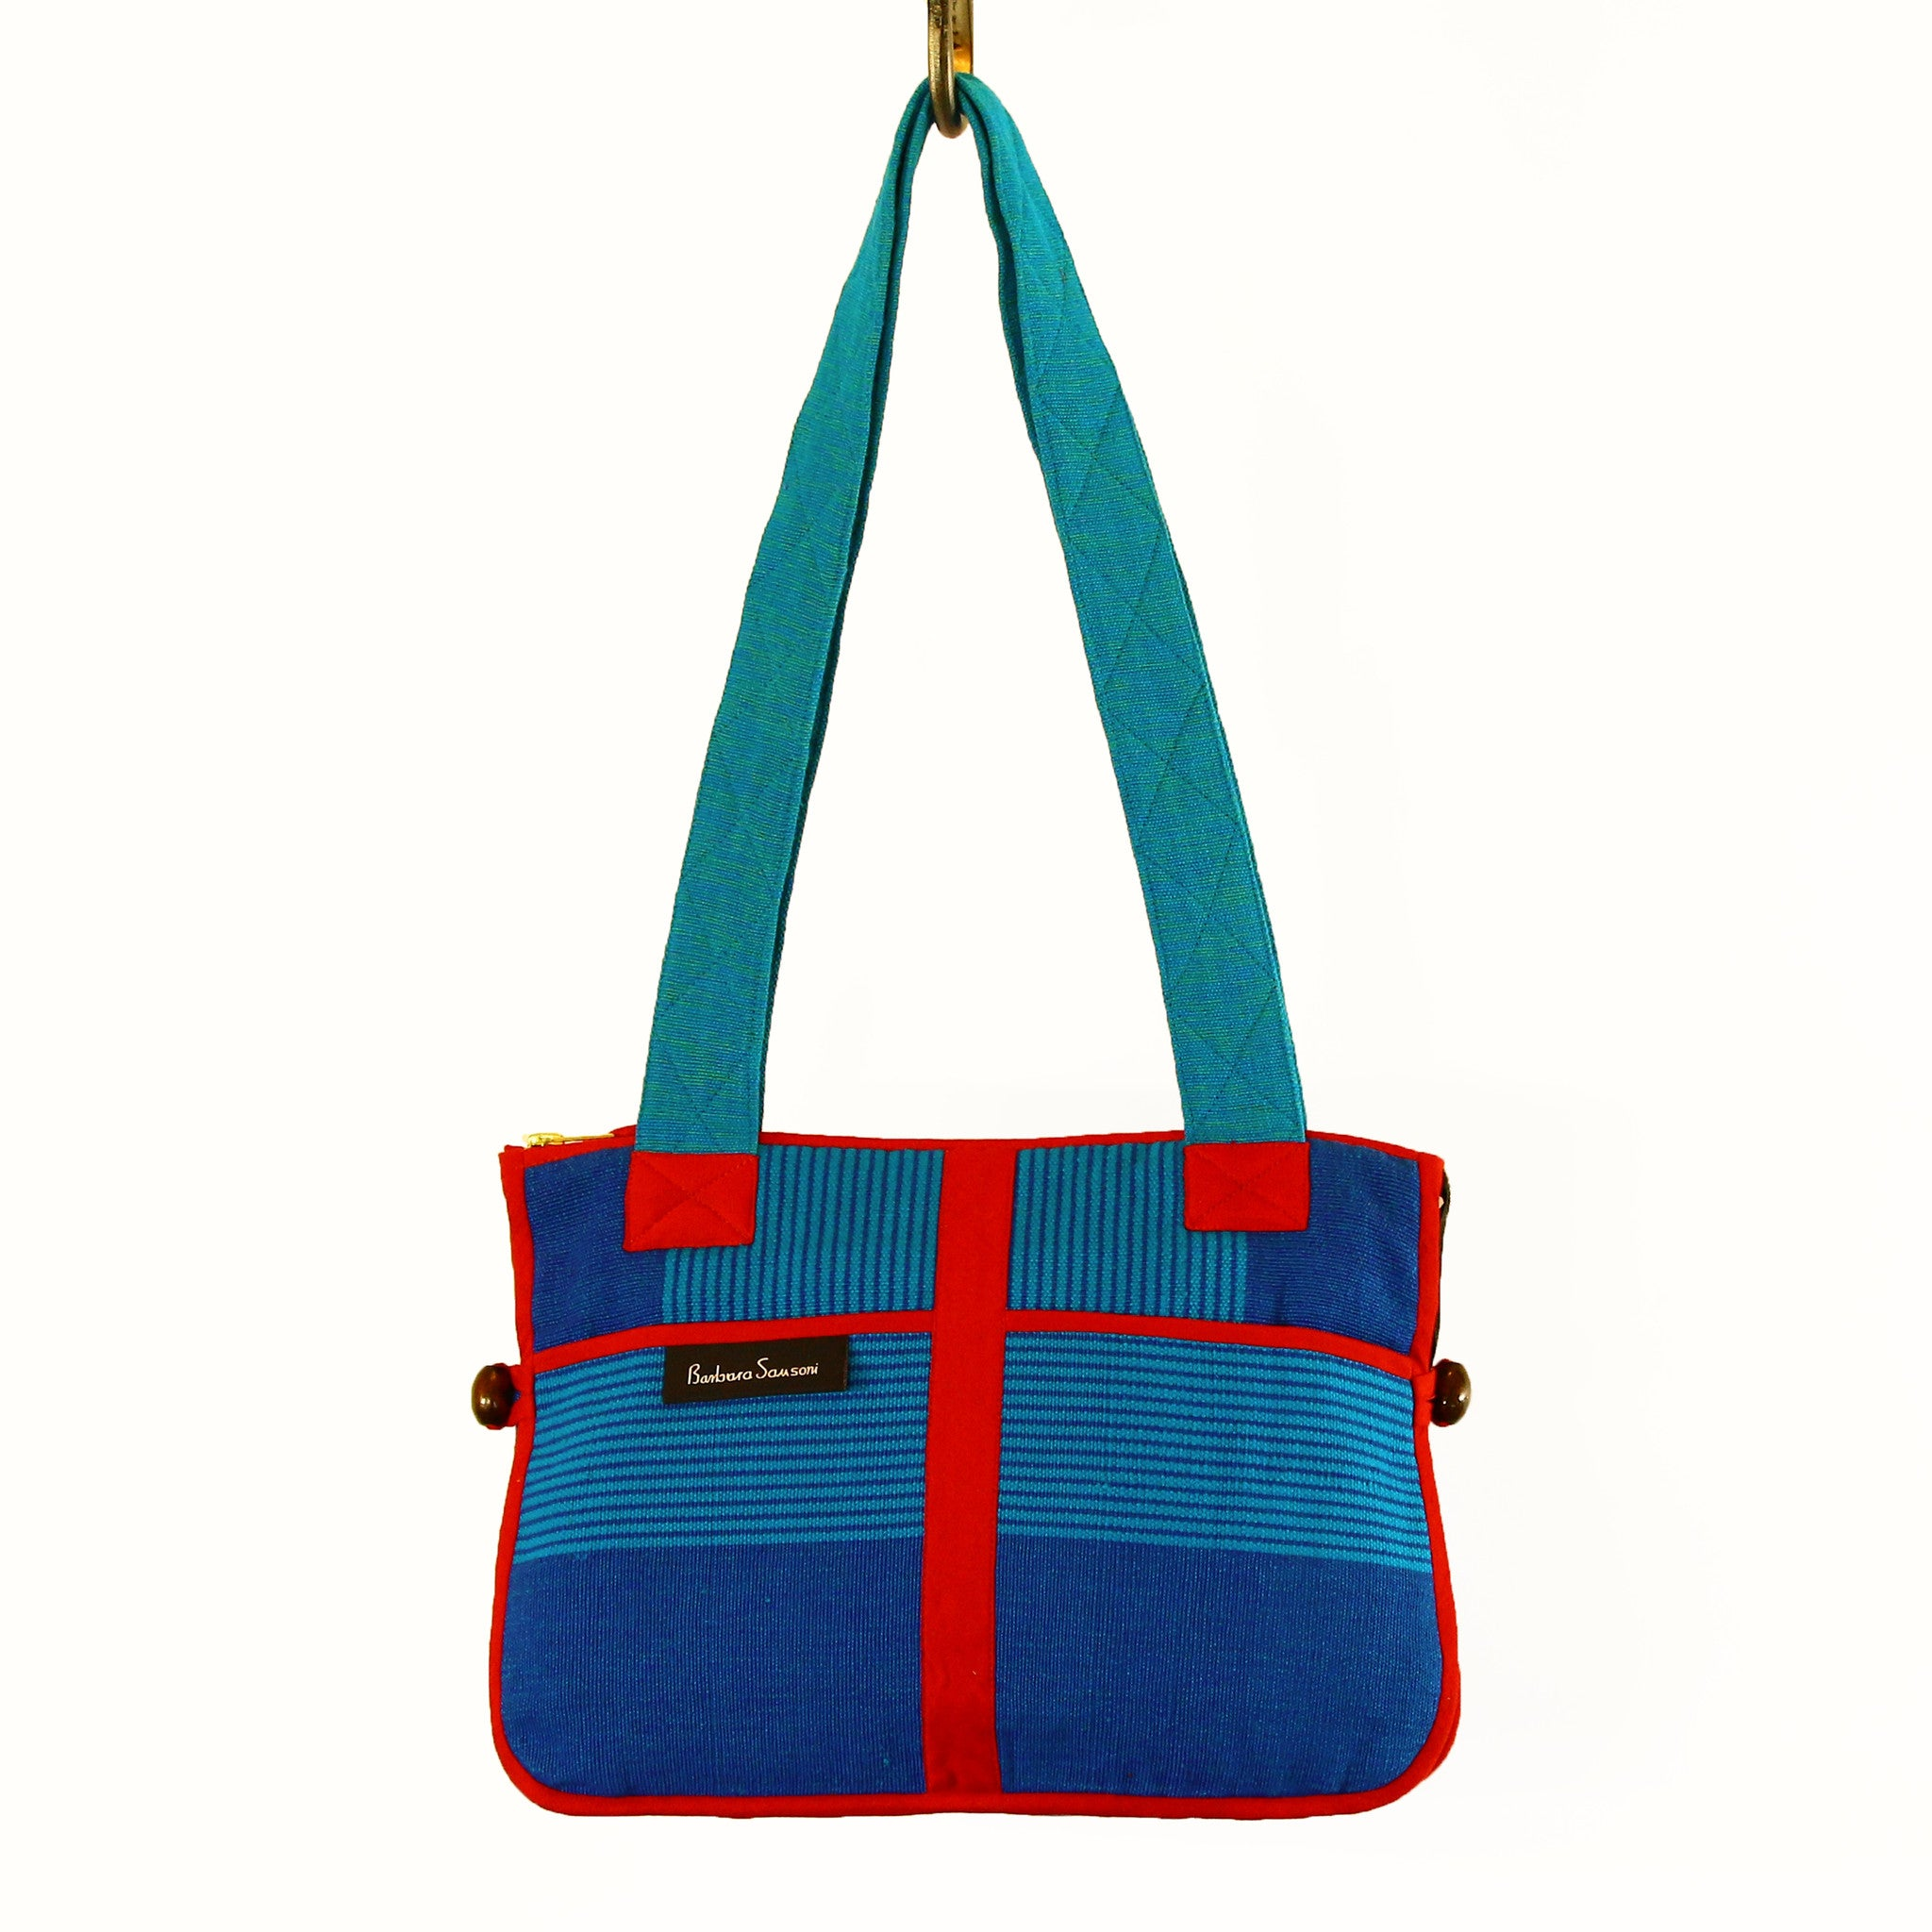 Barefoot Handwoven Expandable Shoulder Bag - Marina fabric shown